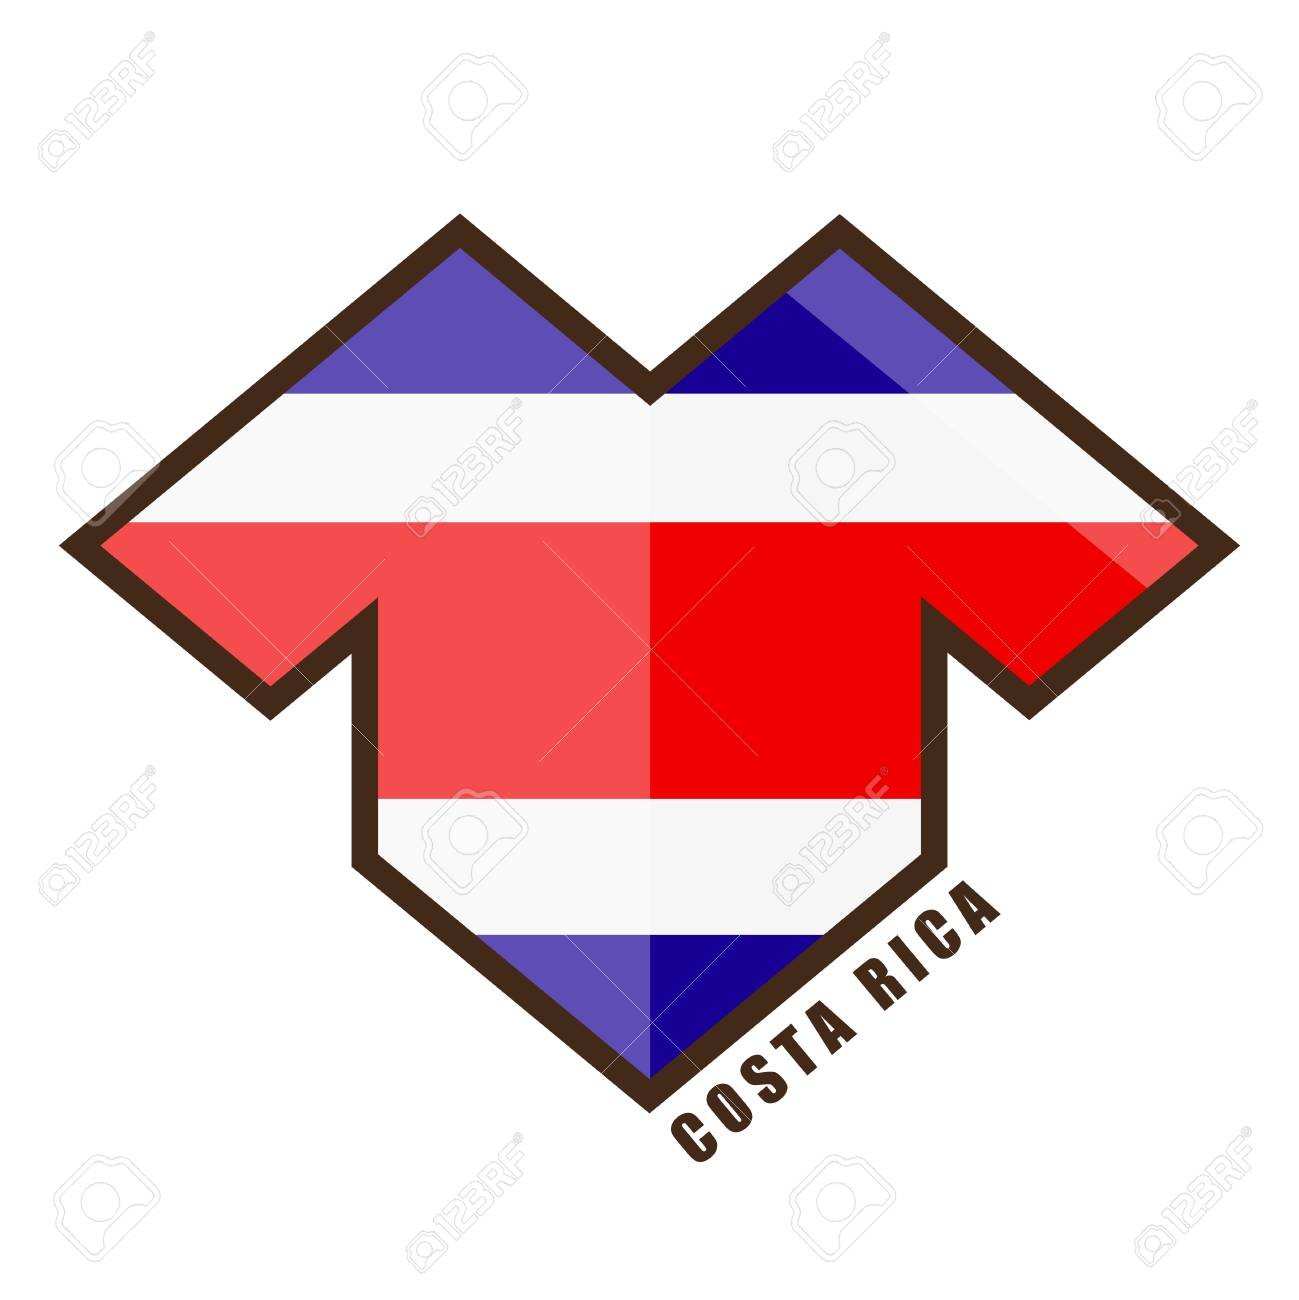 4c4dff558df Vector illustration. Football tournament 2018. Flag of Costa Rica. Stock  Vector - 91758855